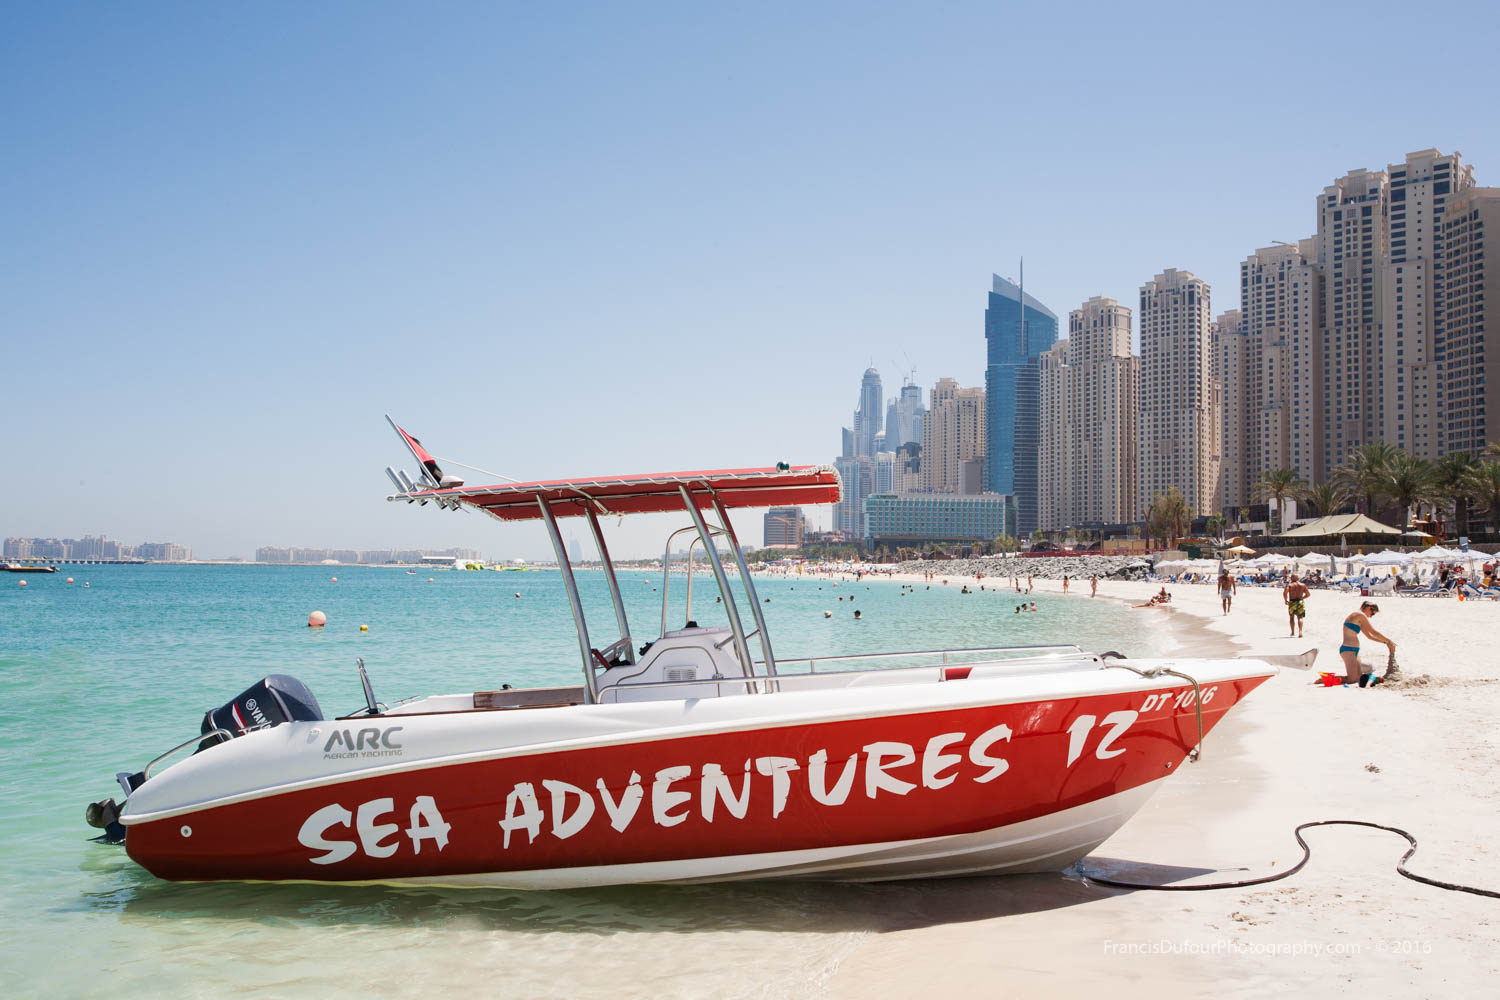 Adventure at the beach (Dubai, UAE)